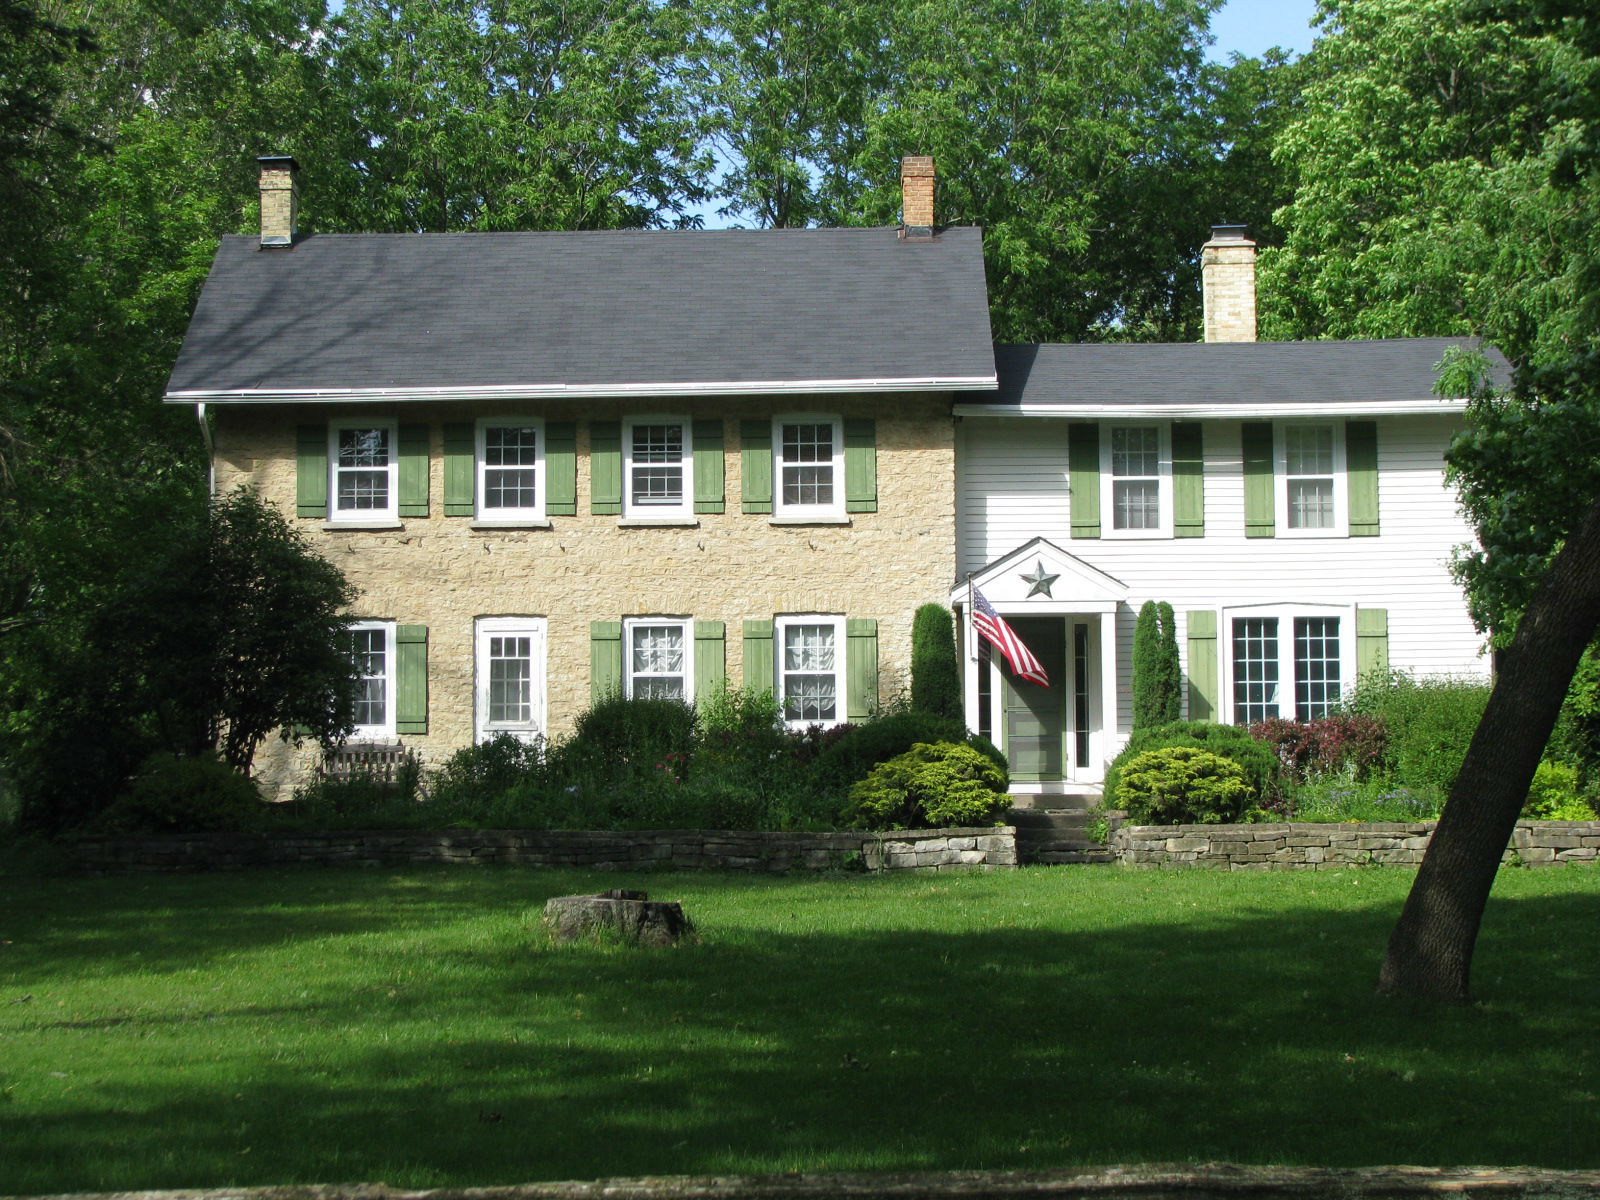 Delafield (WI) United States  city photos gallery : Kemper's house, called Bishopstead, in Delafield, Wisconsin, near the ...